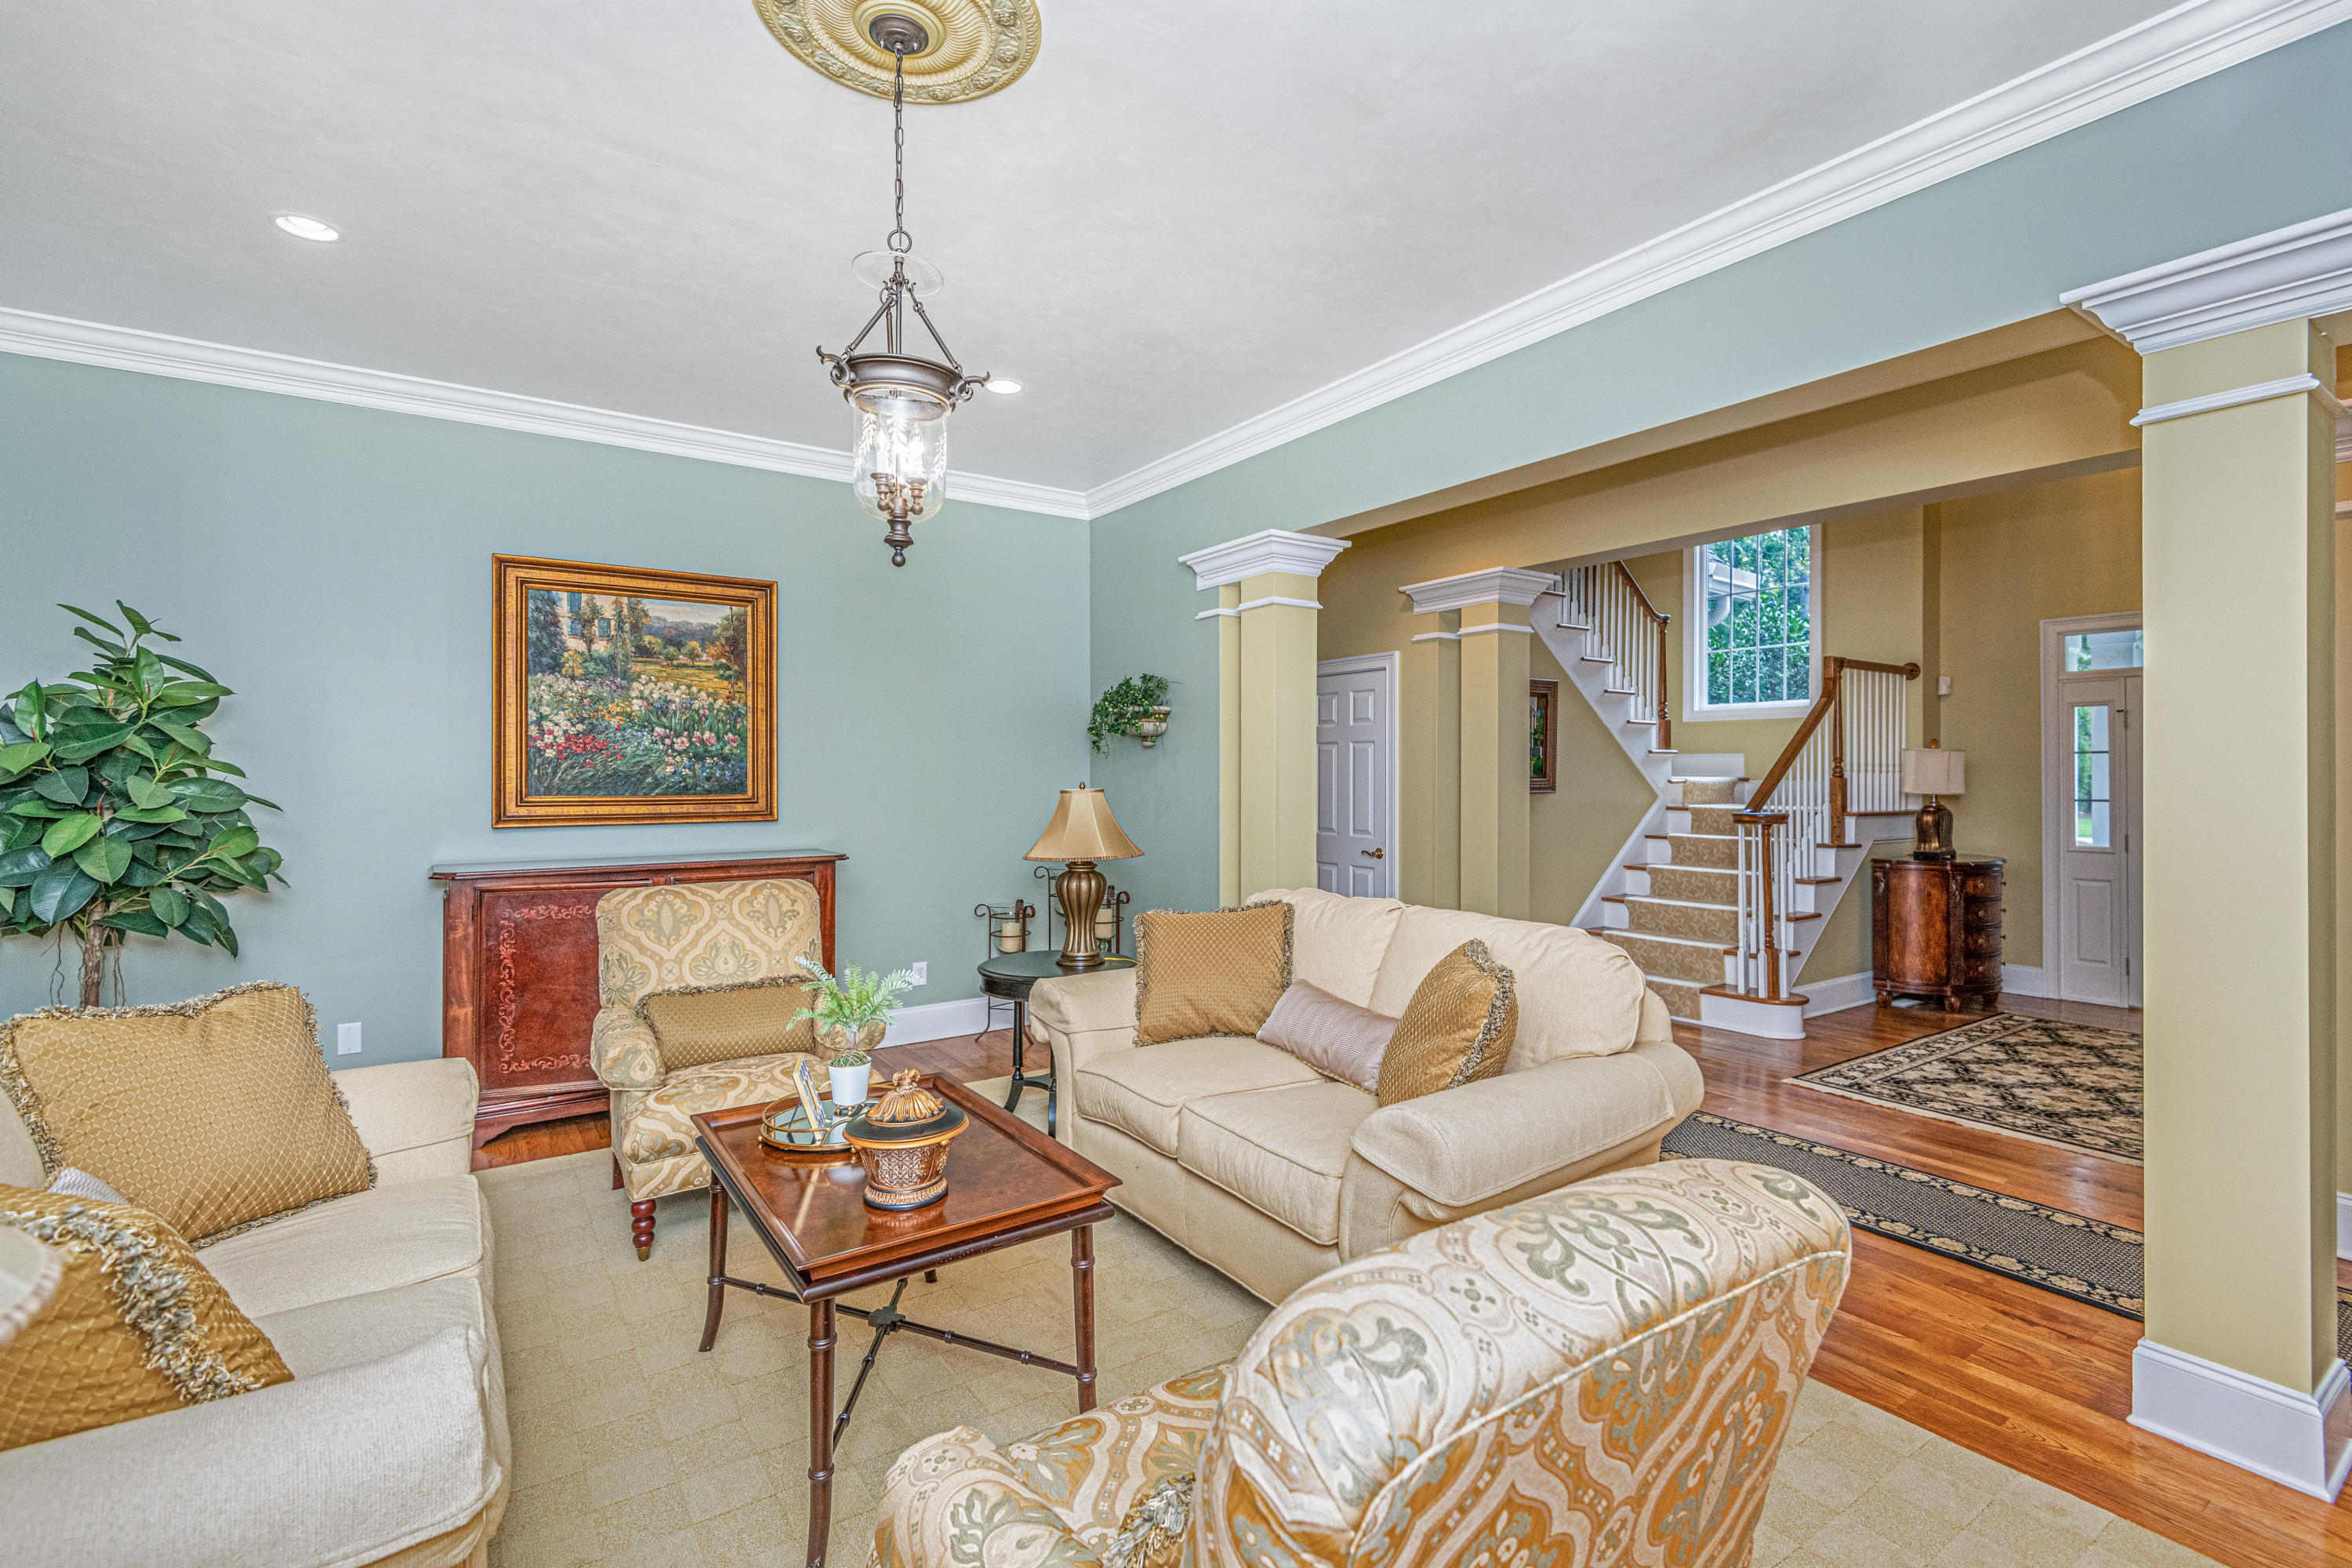 Dunes West Homes For Sale - 1837 Shell Ring, Mount Pleasant, SC - 13